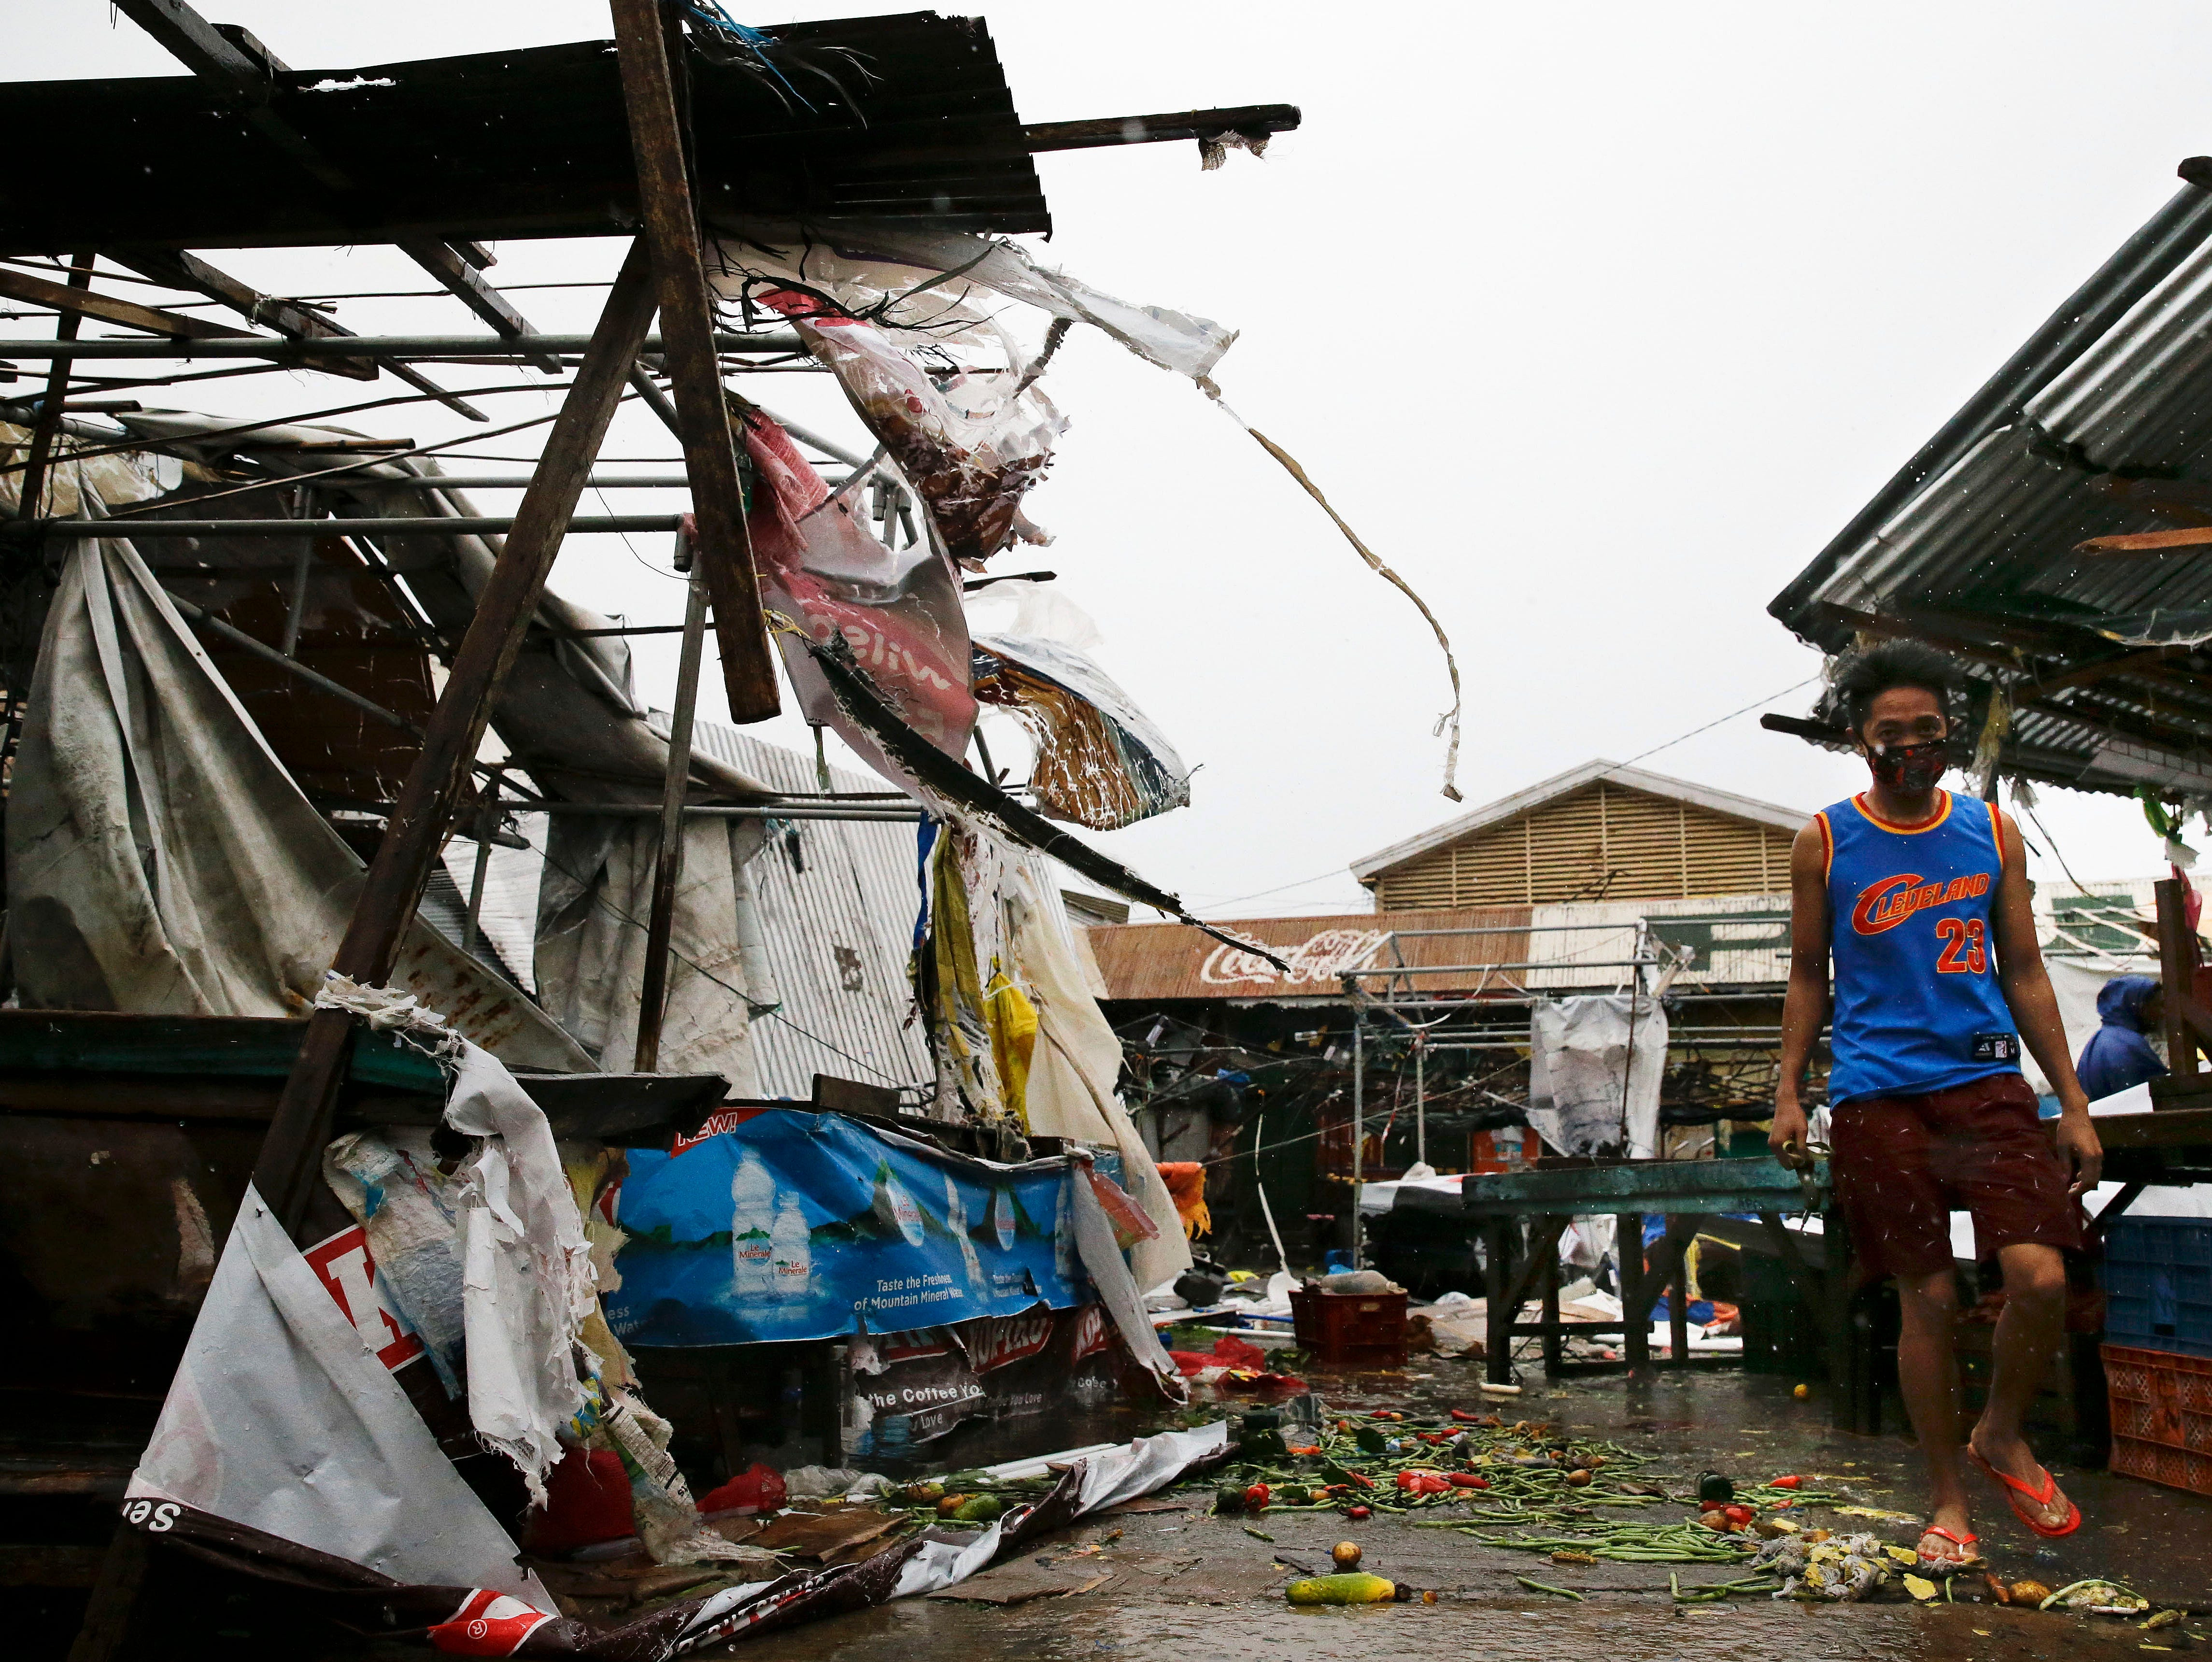 A resident walks along destroyed stalls at a public market due to strong winds as Typhoon Mangkhut barreled across Tuguegrao city in Cagayan province, northeastern Philippines on Saturday, Sept. 15, 2018. The typhoon slammed into the Philippines northeastern coast early Saturday, it's ferocious winds and blinding rain ripping off tin roof sheets and knocking out power, and plowed through the agricultural region at the start of the onslaught.